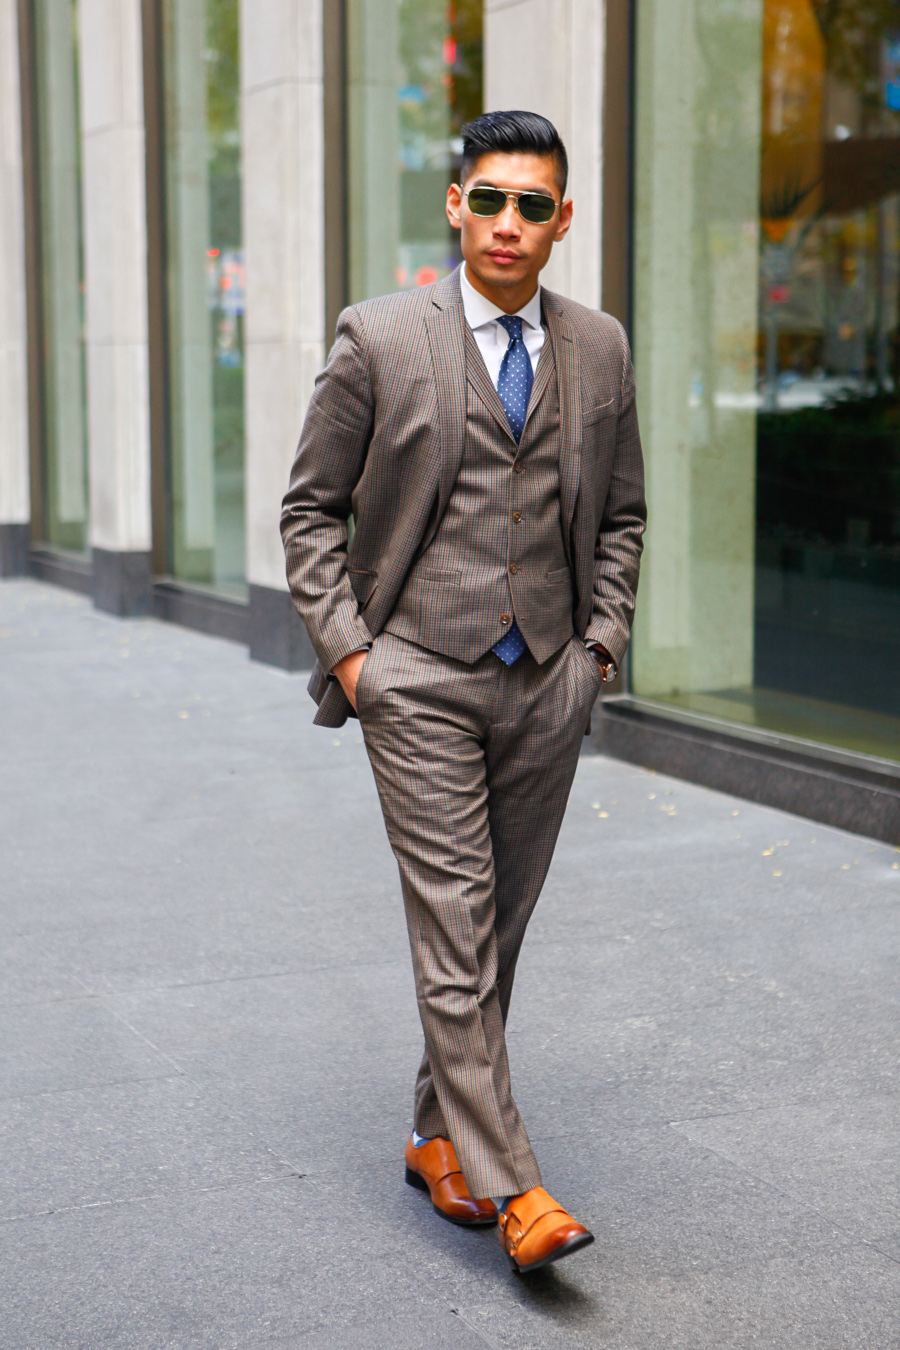 Levitate Style Bar Iii Suit Three Piece Wear To Work